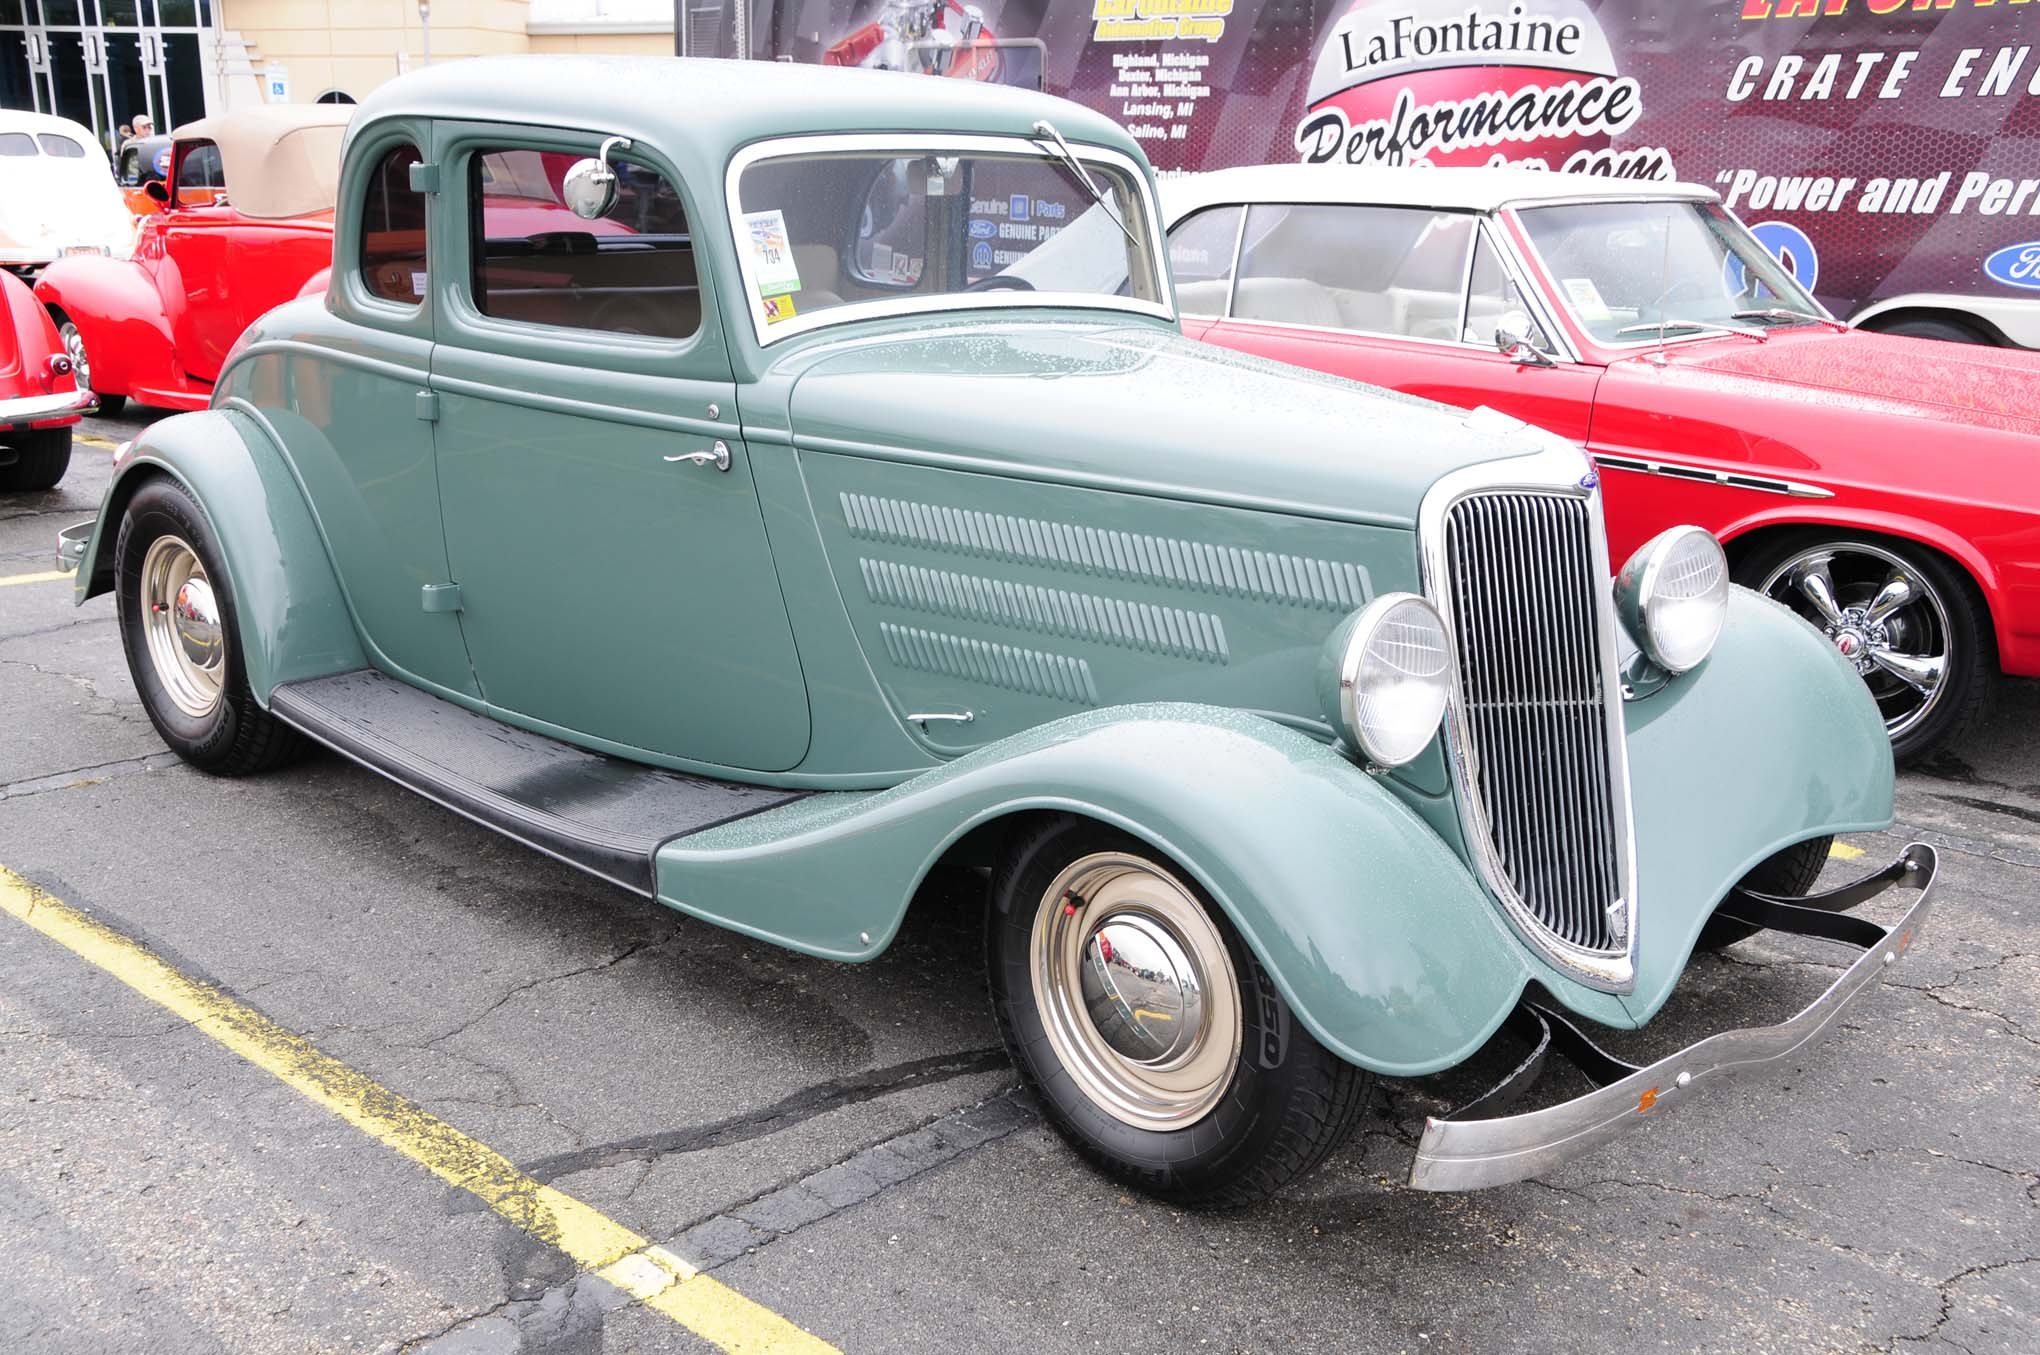 It's hard to beat the factory lines of a 1934 Ford five-window coupe, so Walt Dochod covered his in a very subtle gray-green, set the stance and hit the road.